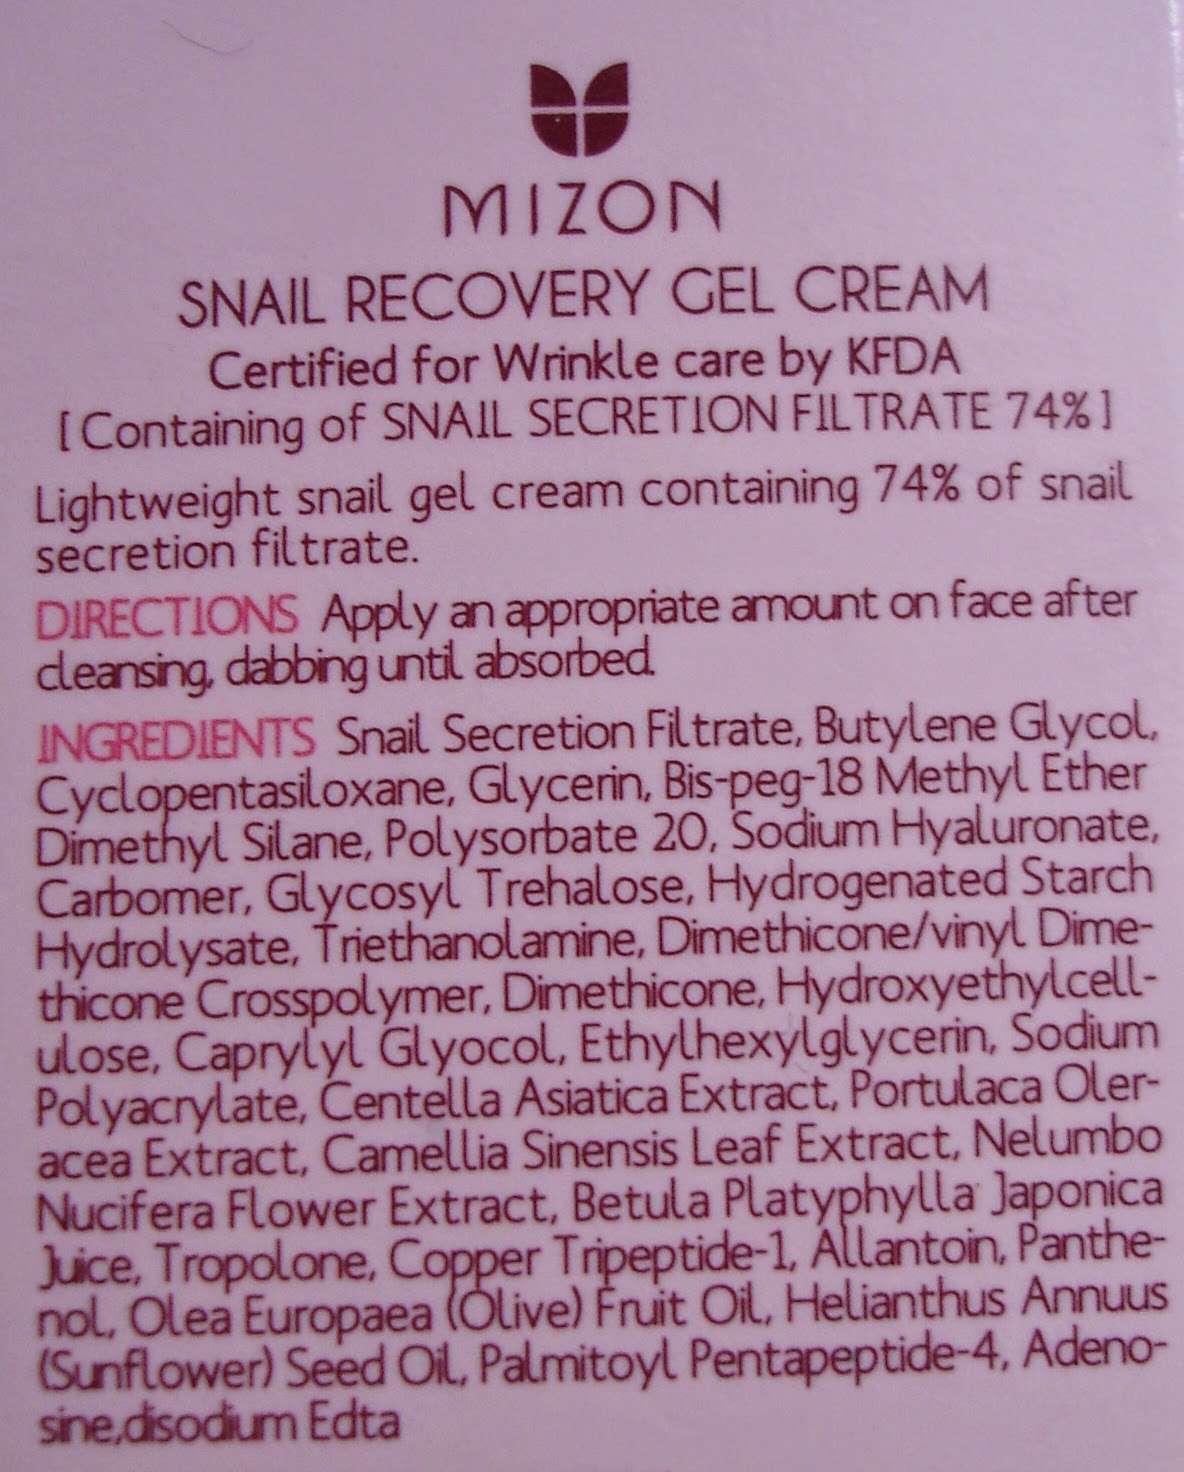 Mizon snail recovery gel cream состав